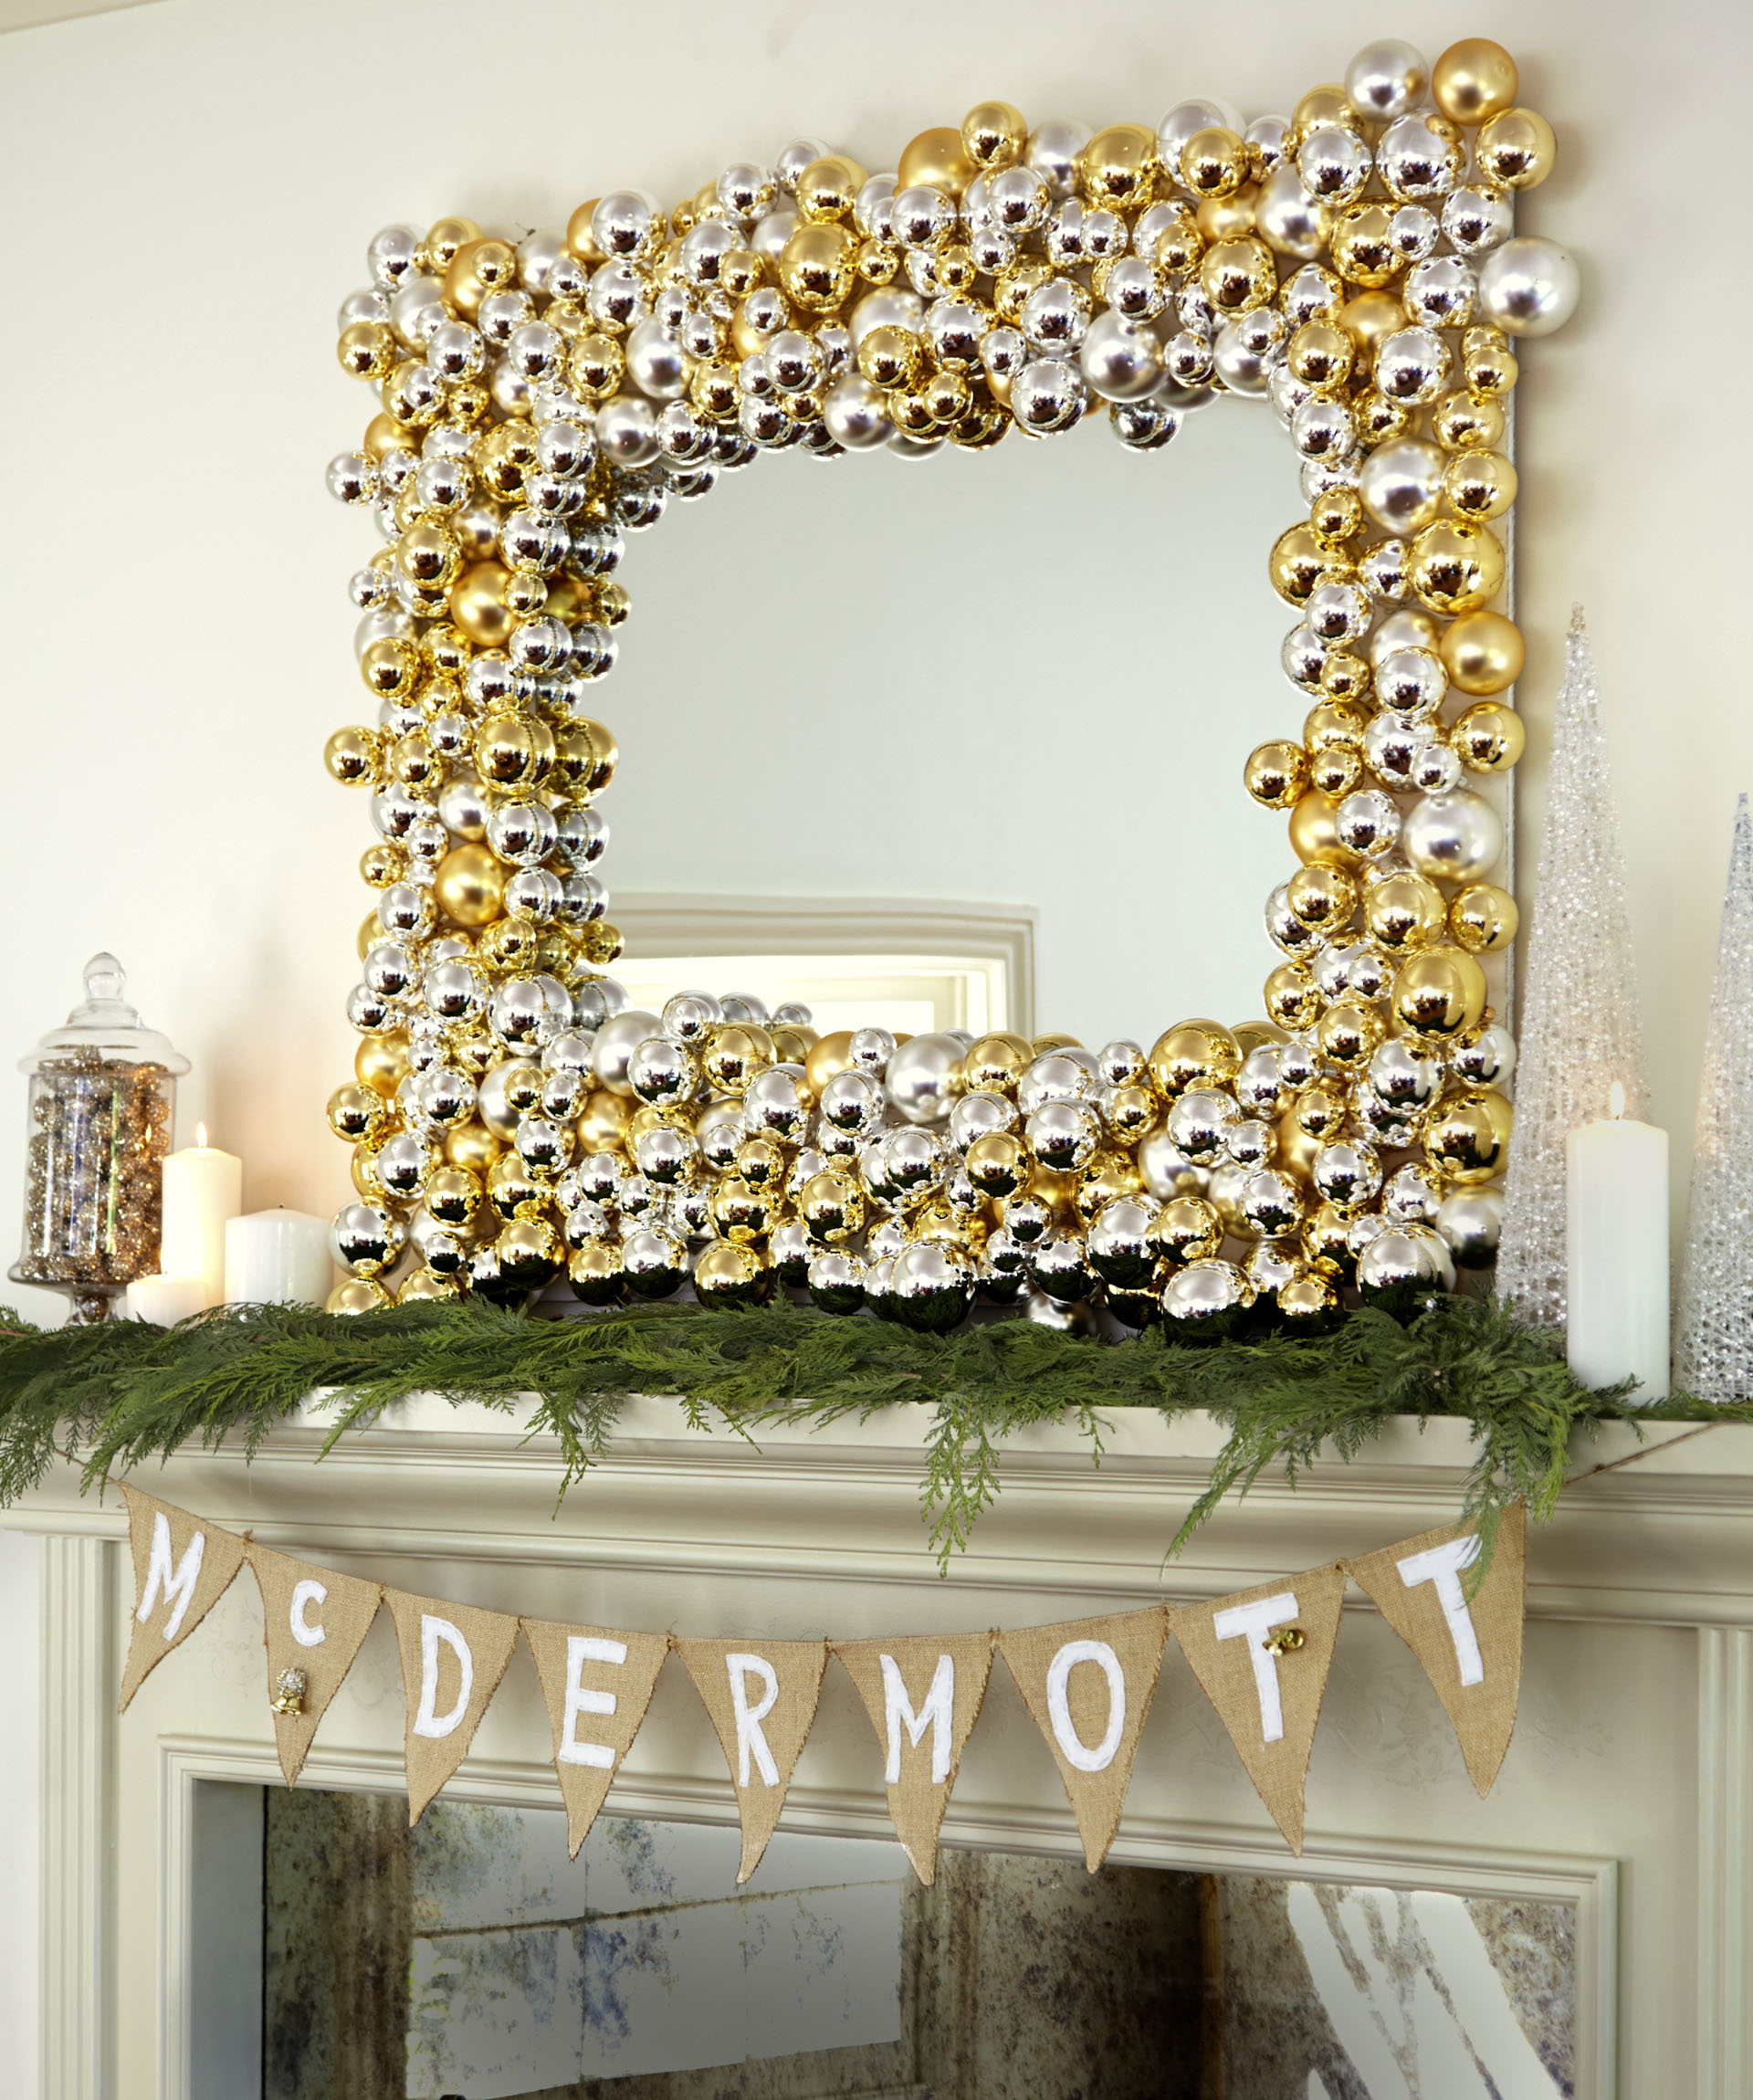 DIY Holiday Decor Ideas From Tori Spelling